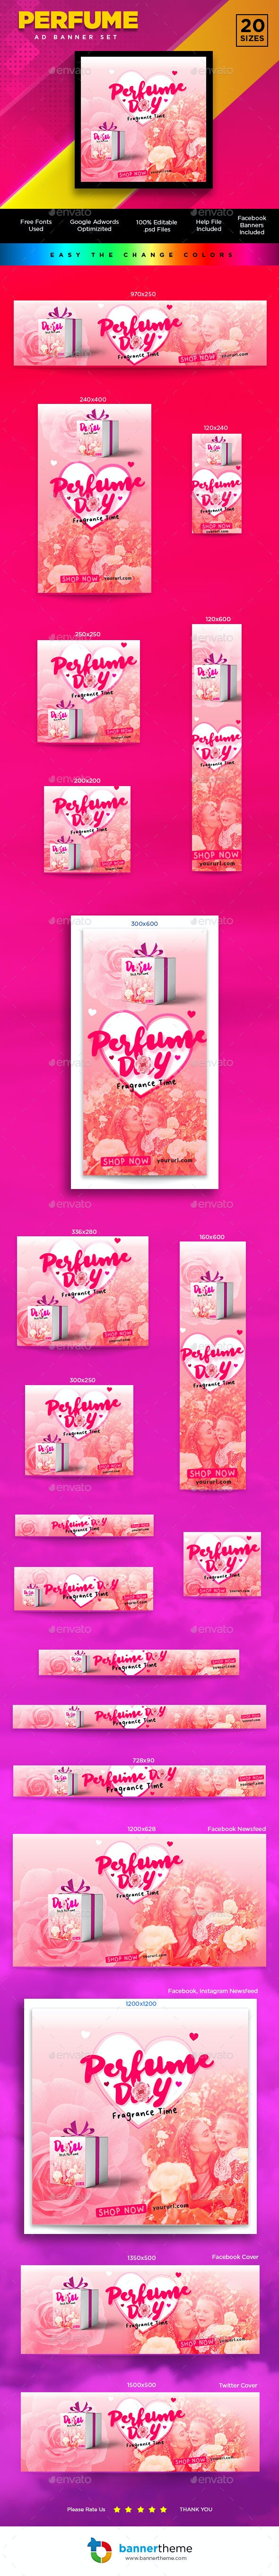 Perfume & Cosmetic Banner - Banners & Ads Web Elements